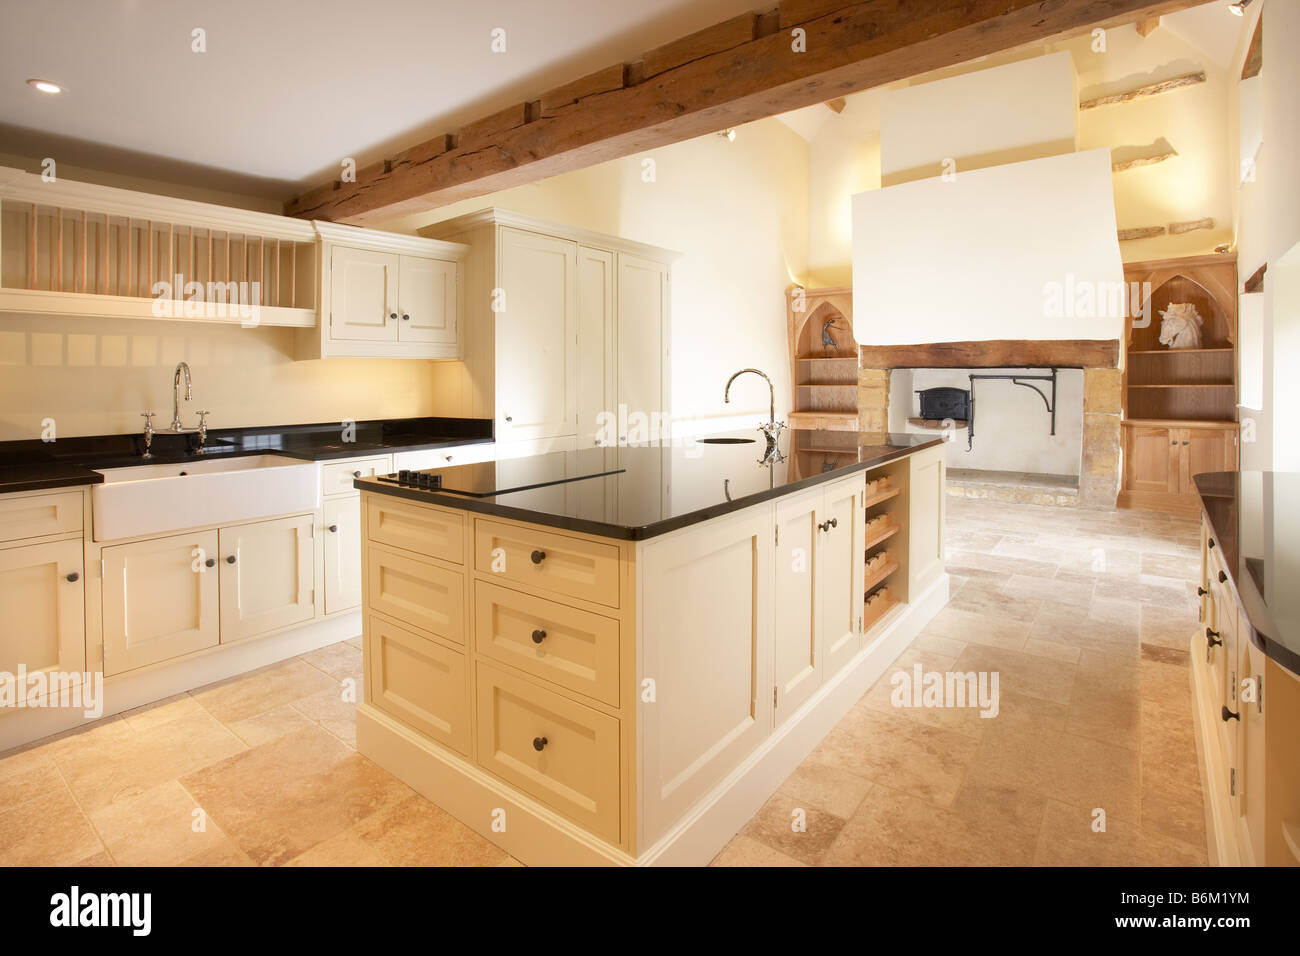 Modern cream quaker style kitchen in old house with for Quaker kitchen design